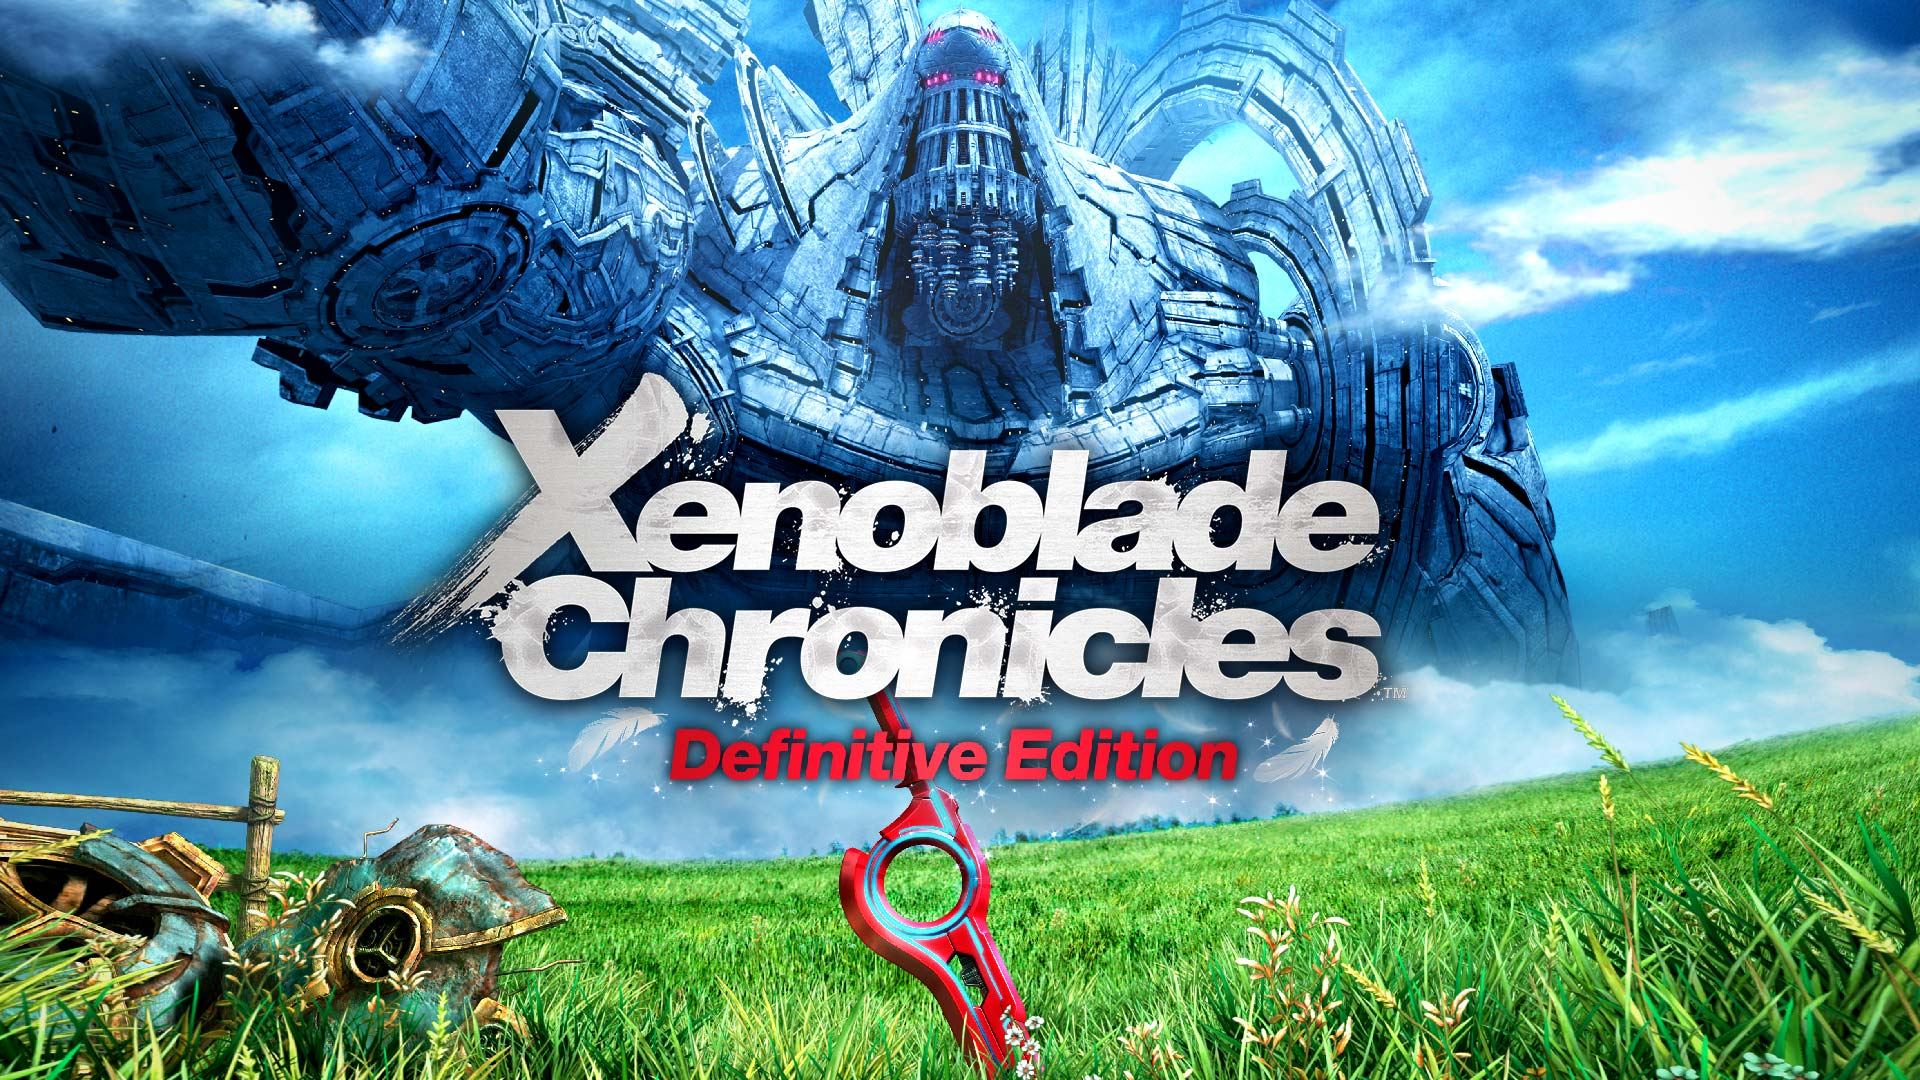 xenoblade chronicles, affinity coins